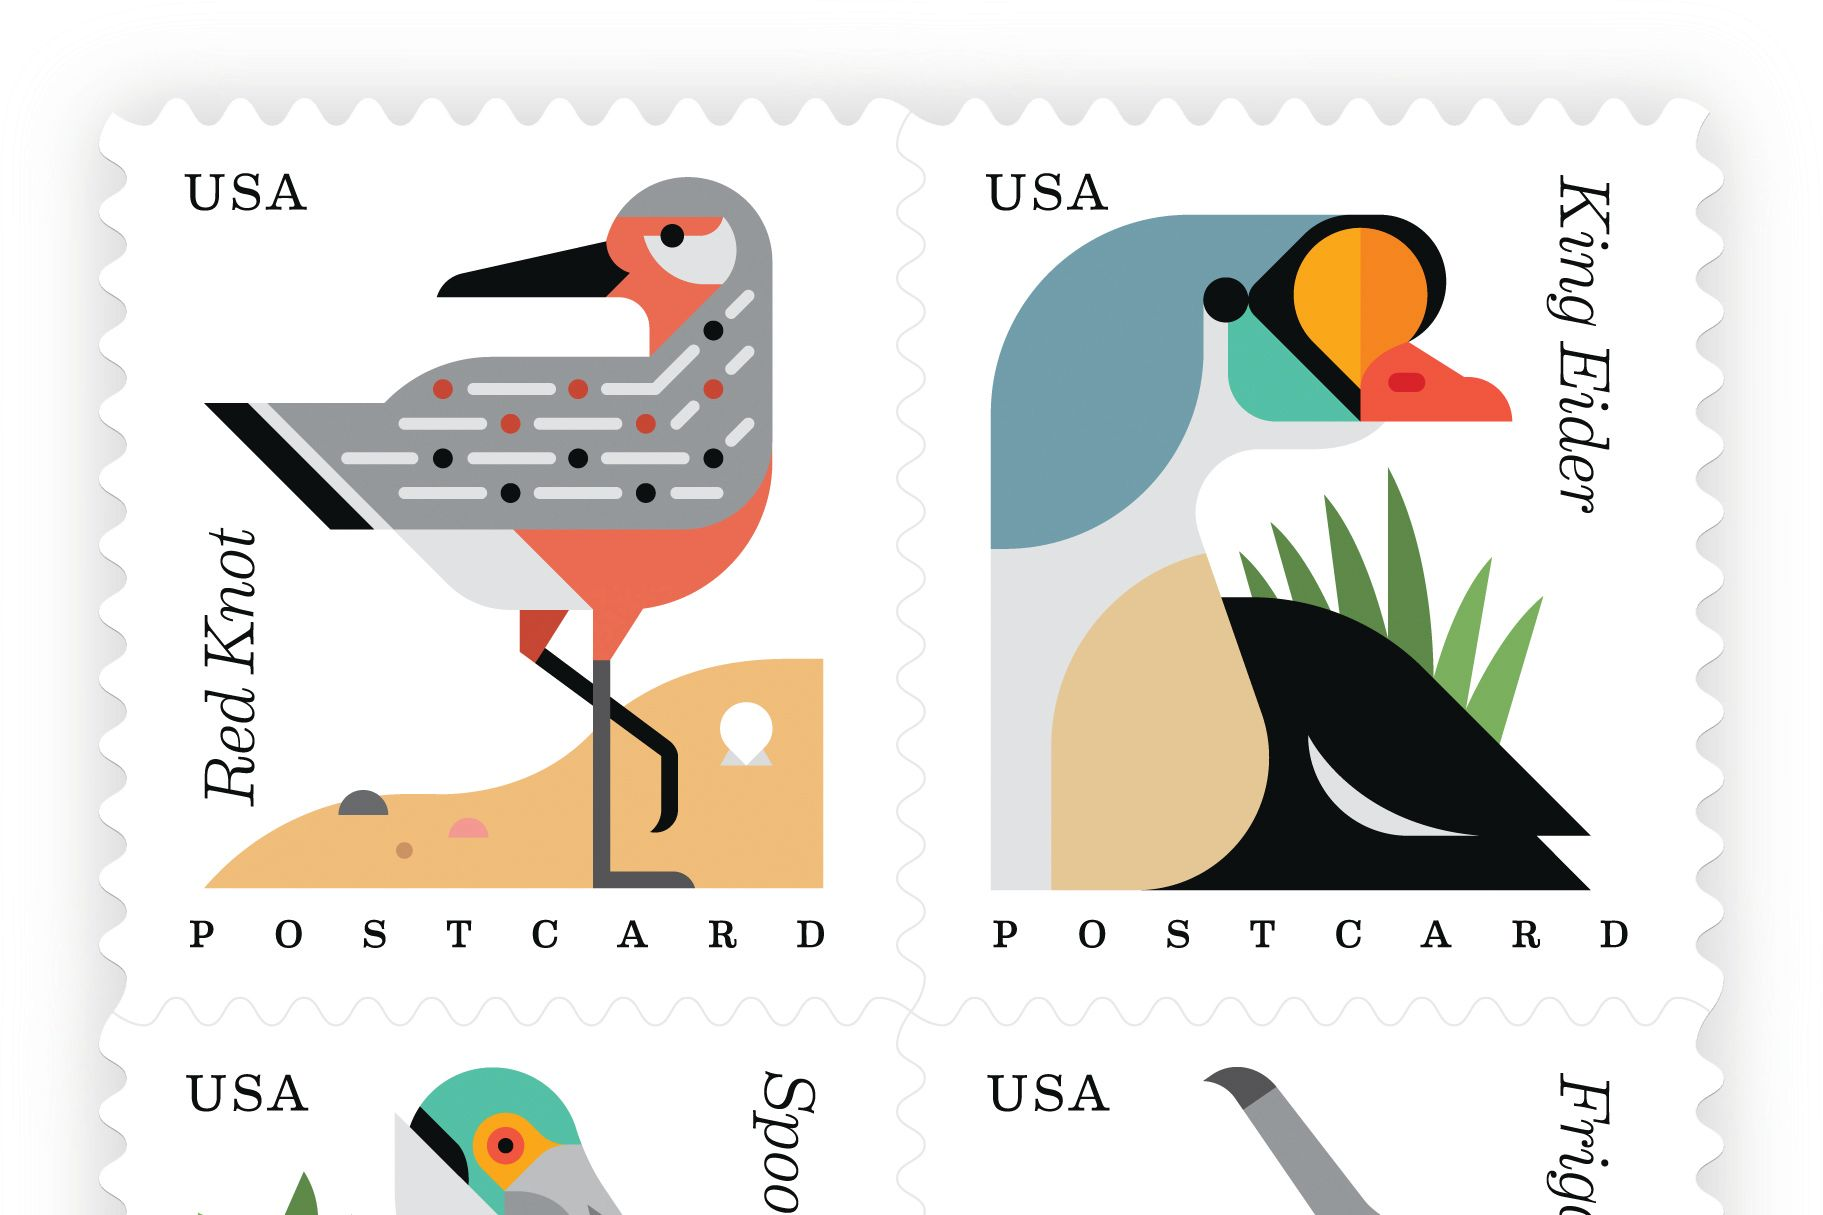 Usps coastal birds shadow zyppuc